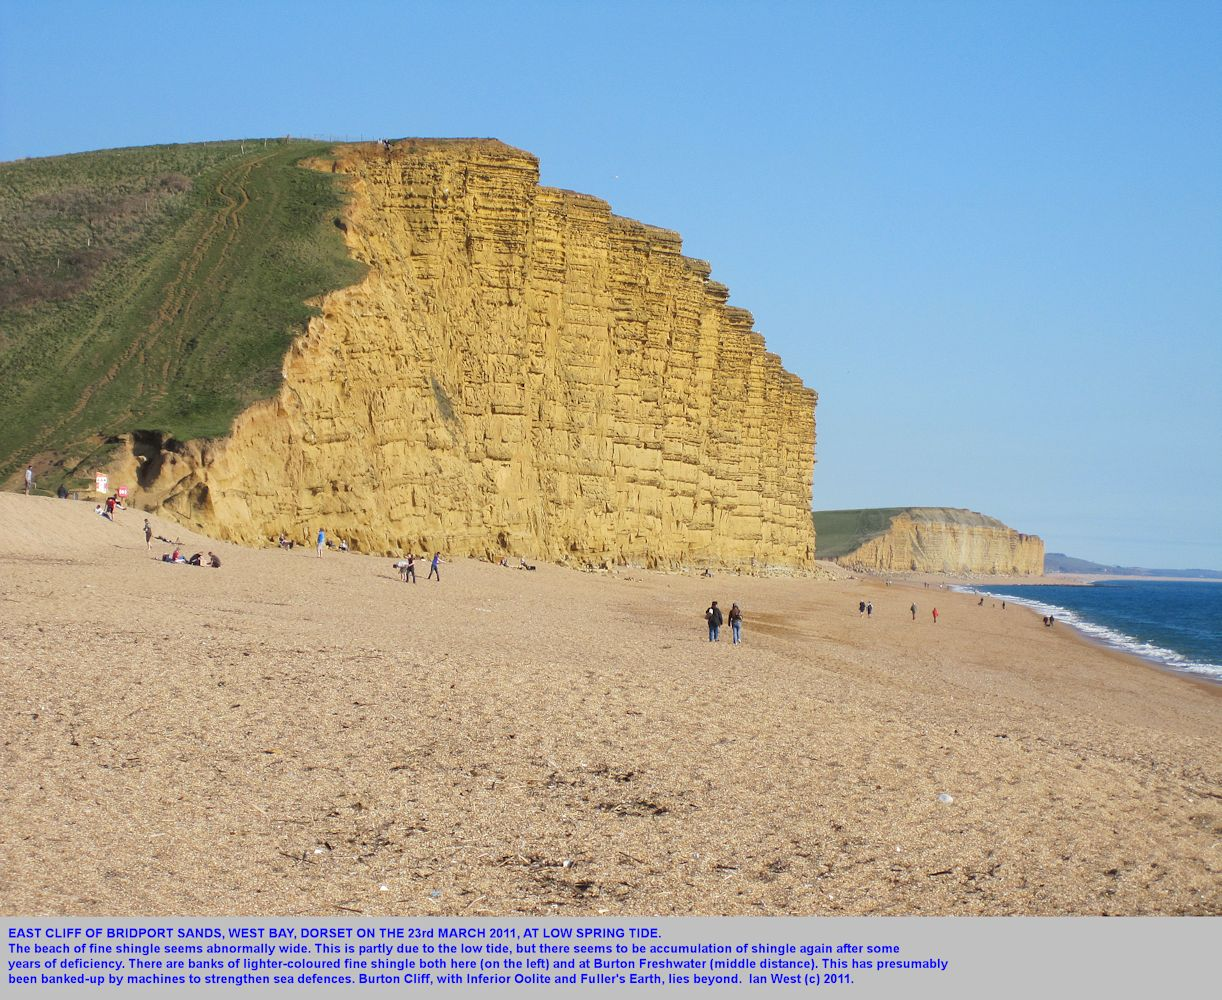 East Cliff, West Bay, Bridport, Dorset, at low spring tide, 23rd March 2011